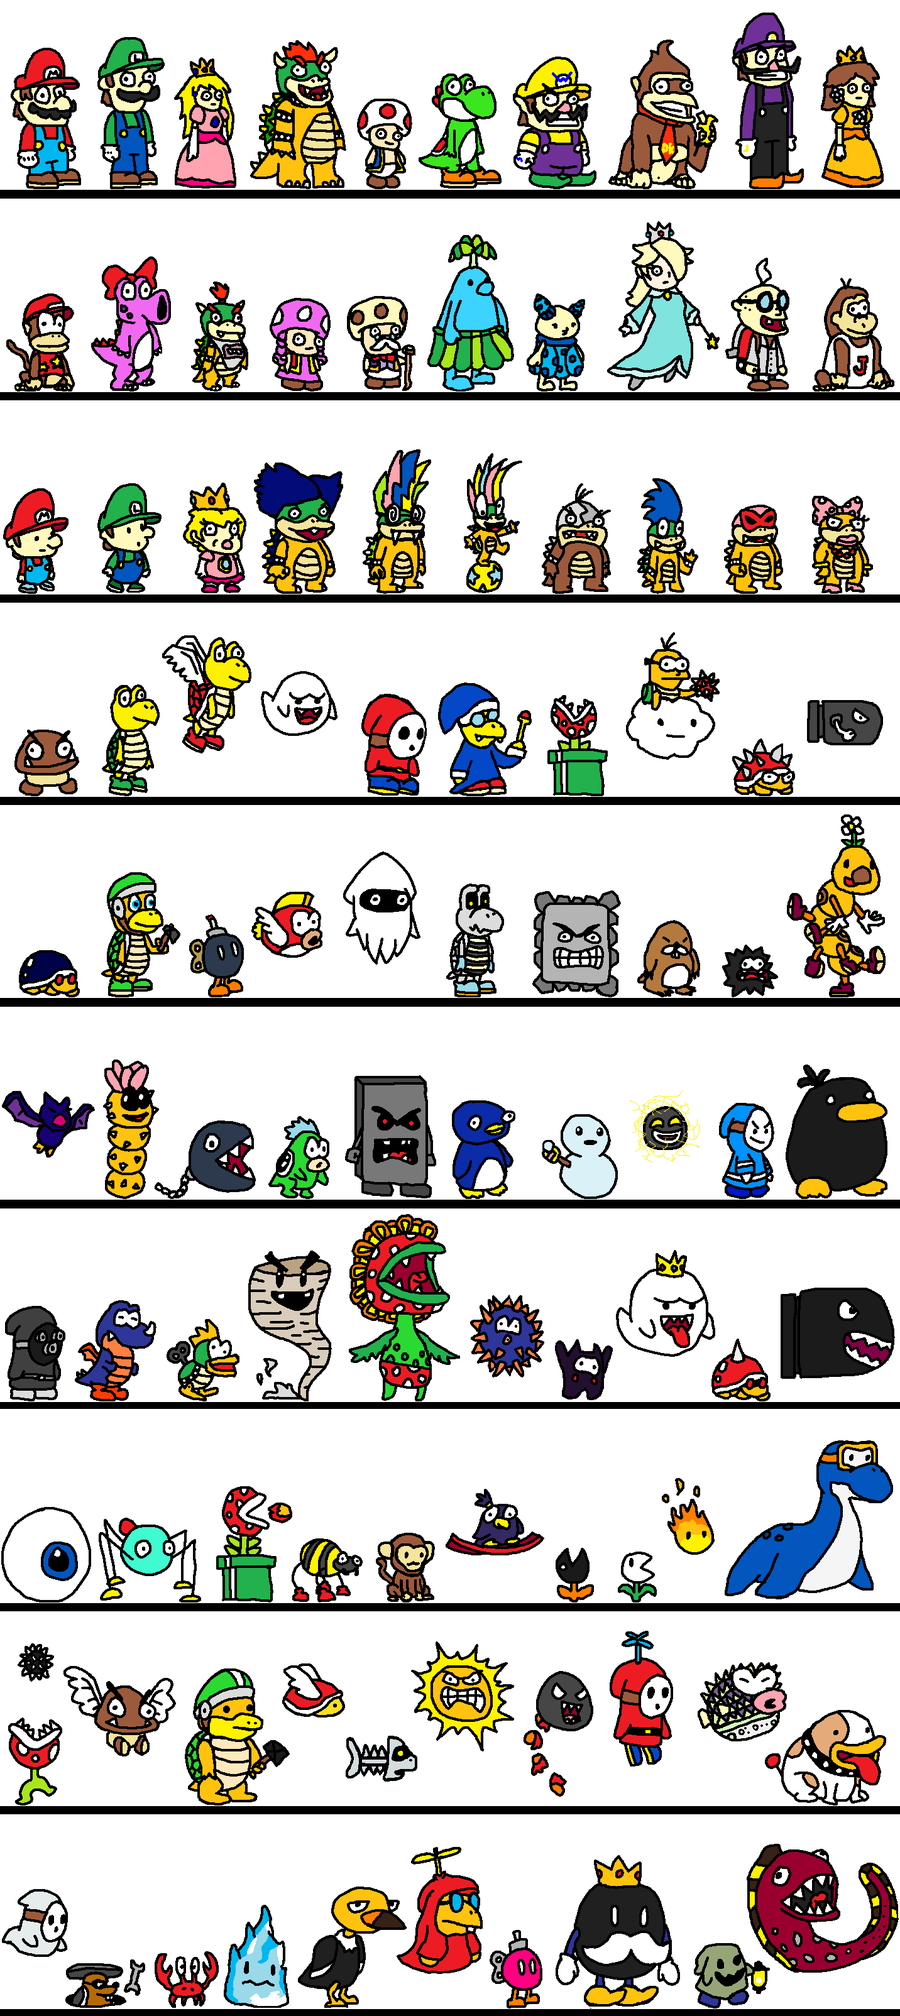 images of mario characters